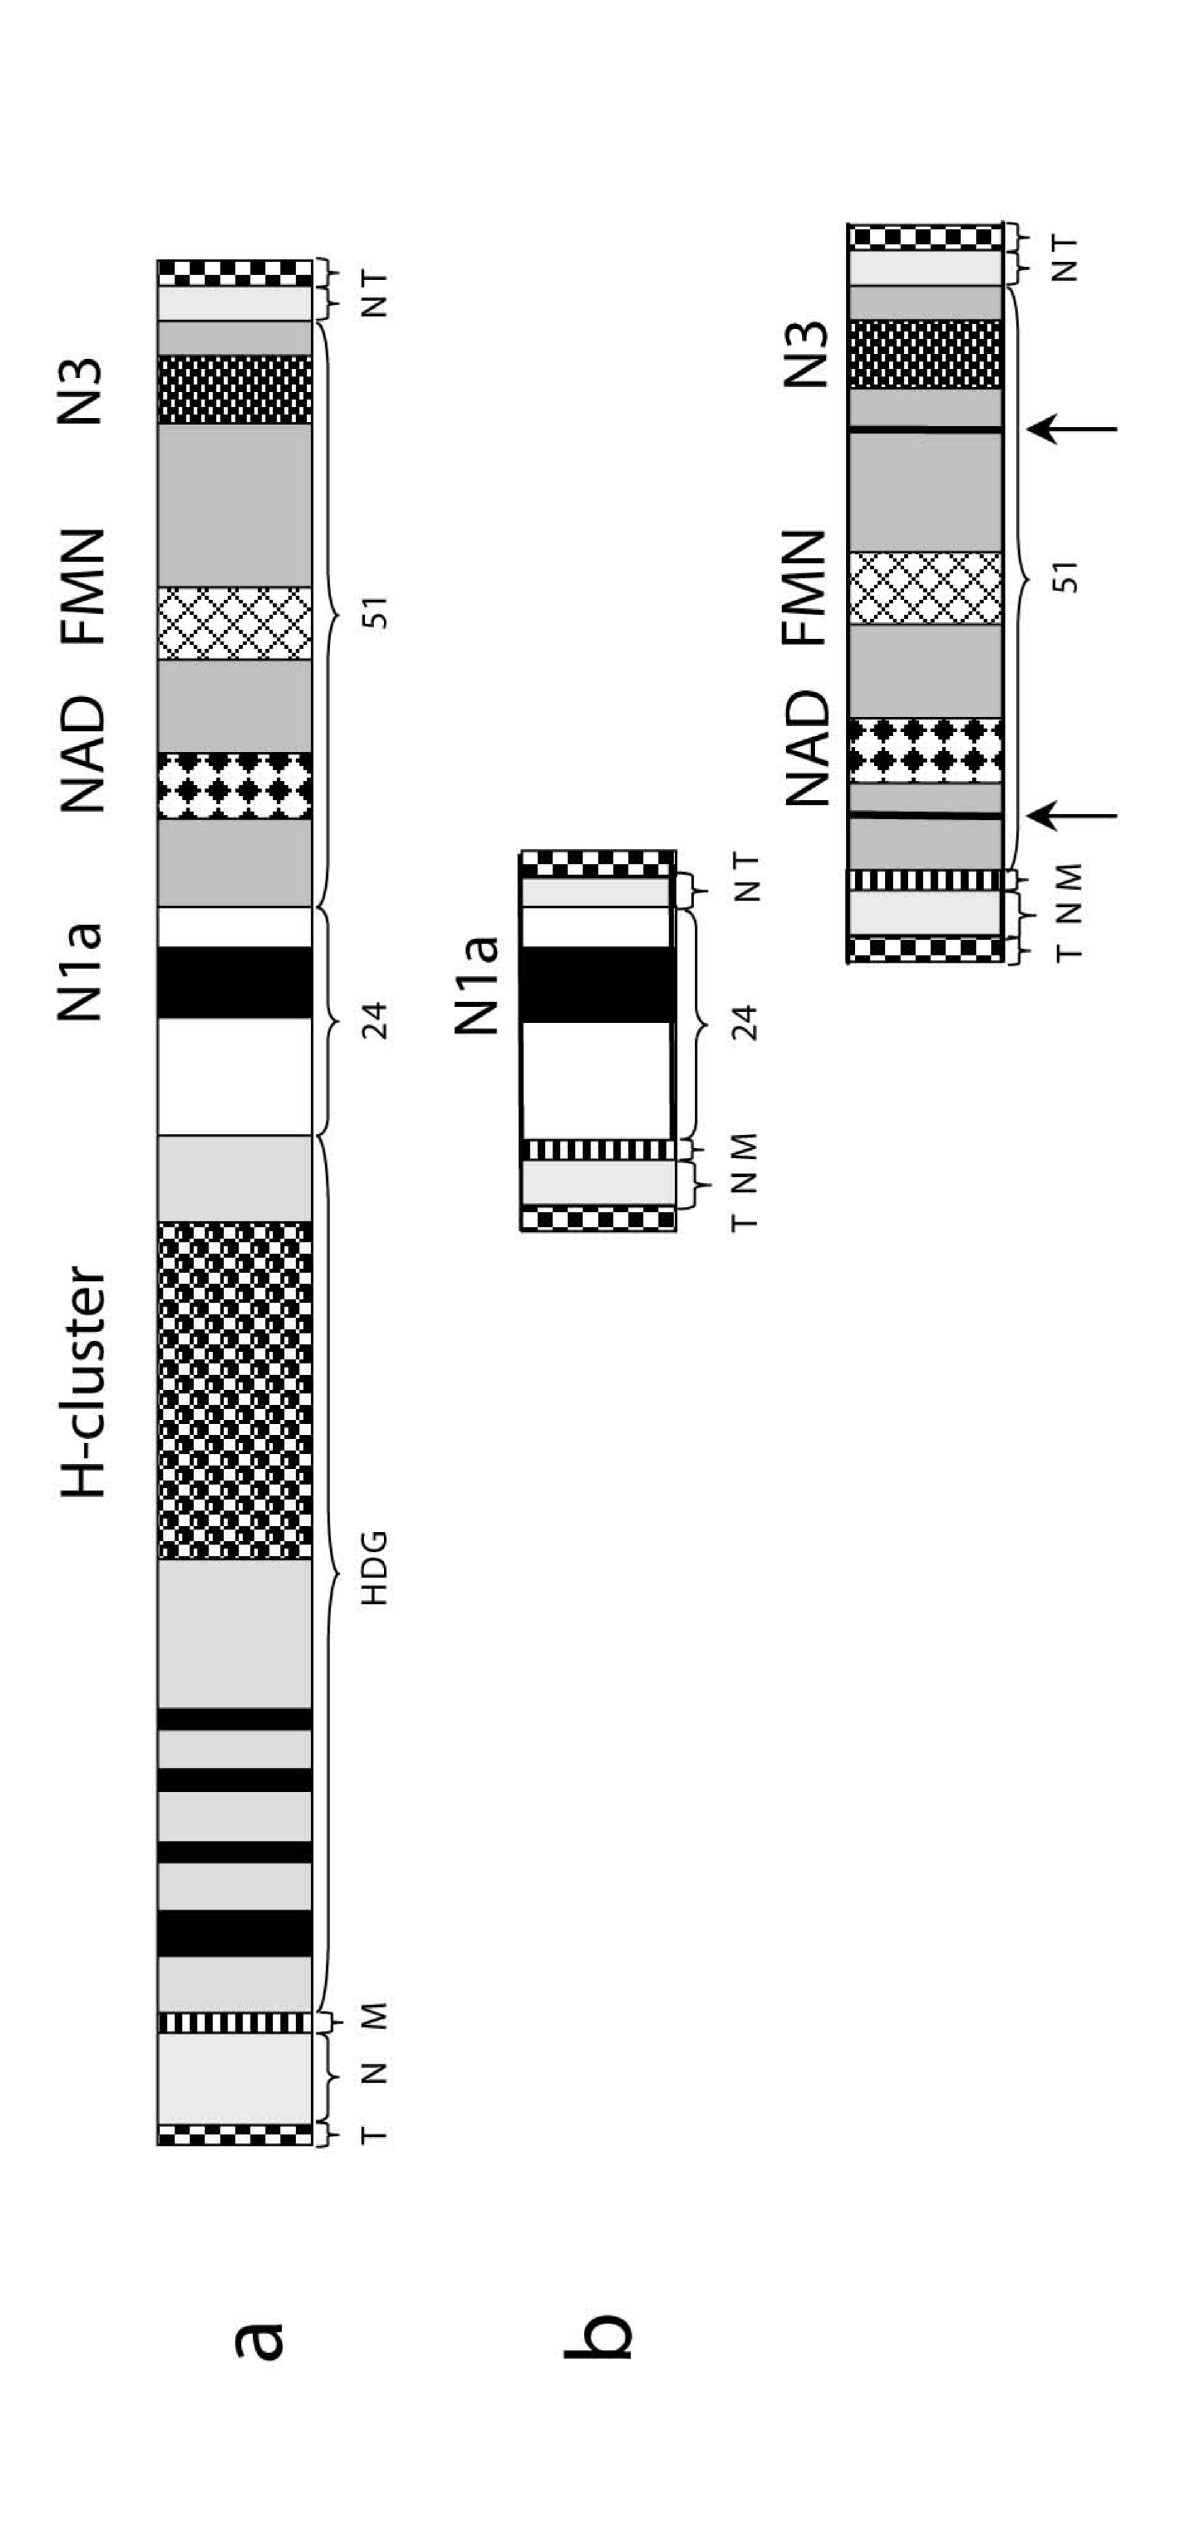 https://static-content.springer.com/image/art%3A10.1186%2F1471-2148-7-230/MediaObjects/12862_2007_Article_521_Fig1_HTML.jpg